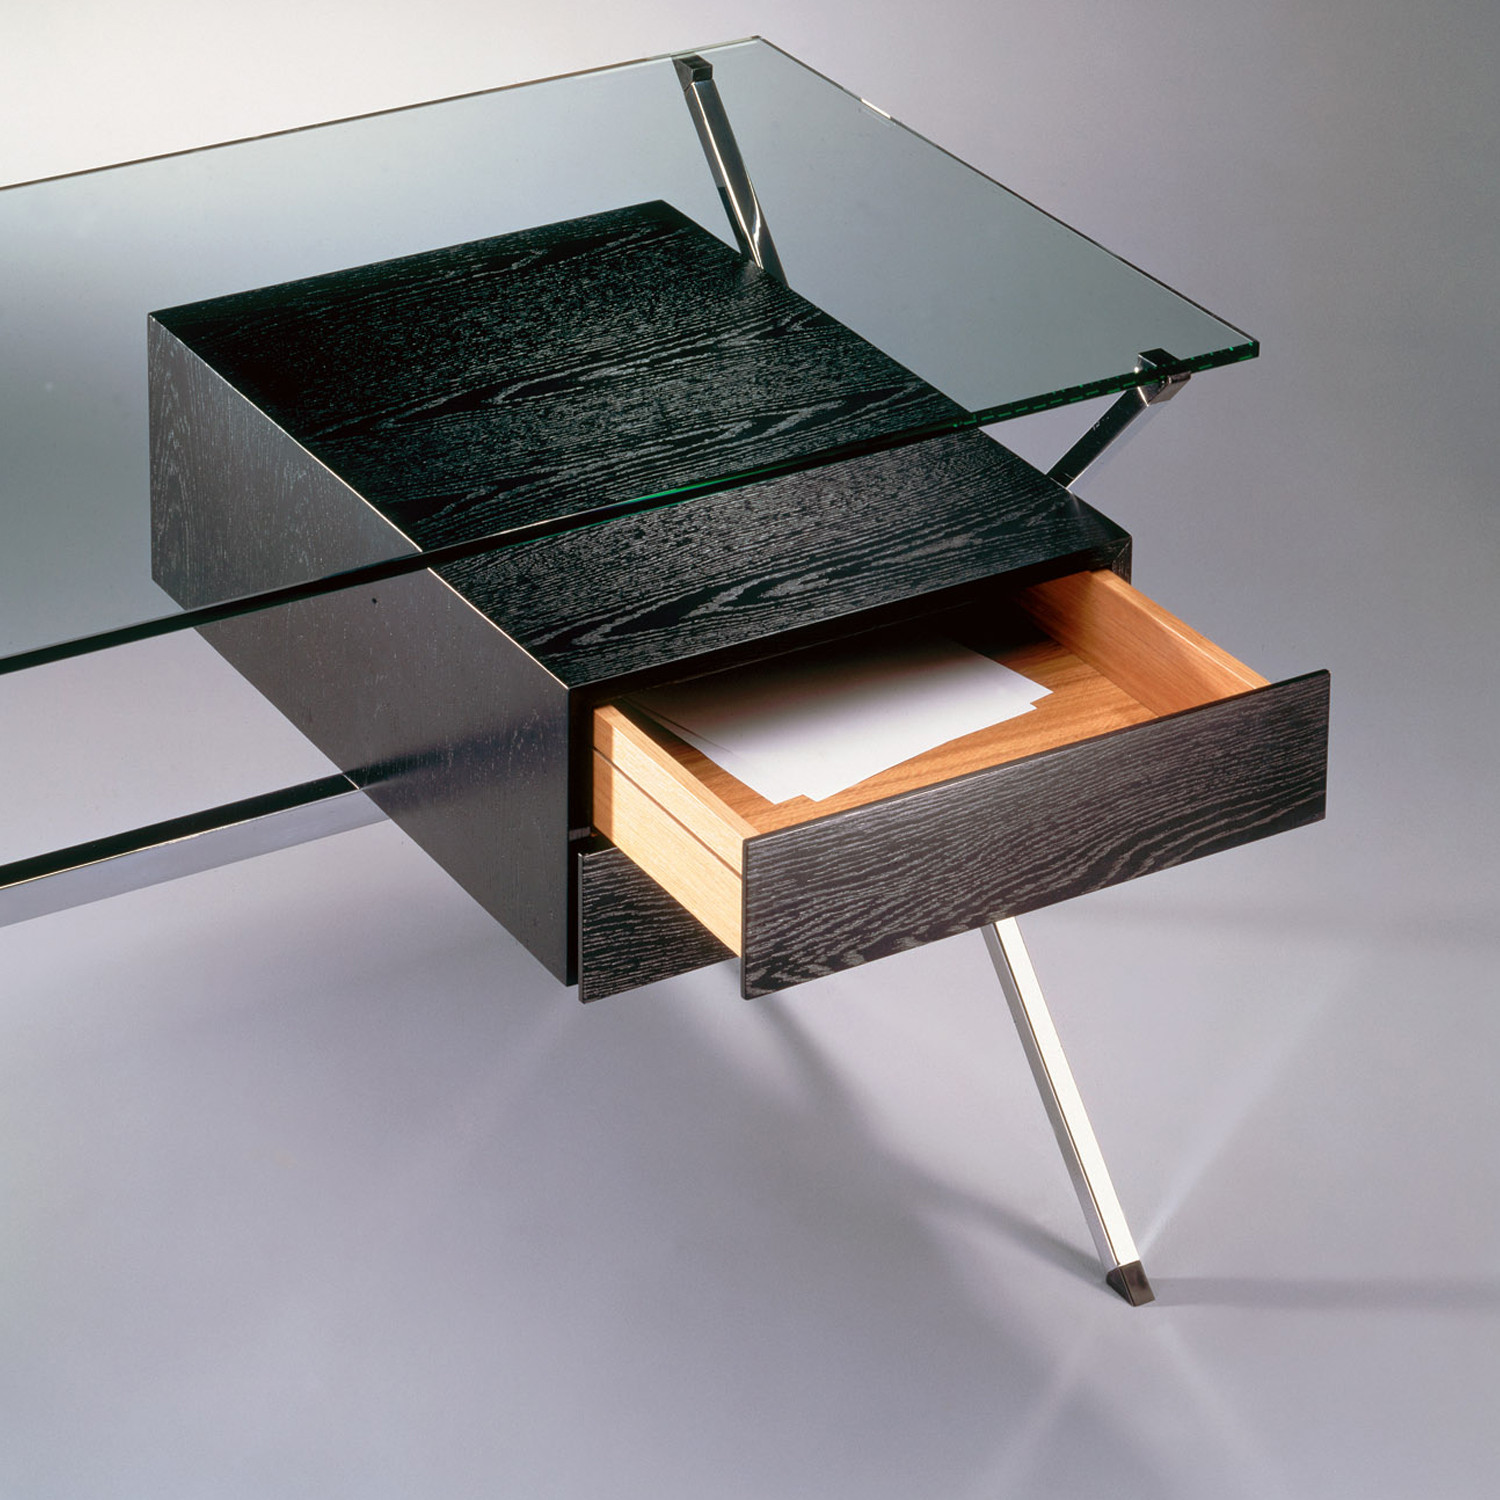 Albini Desk Detail